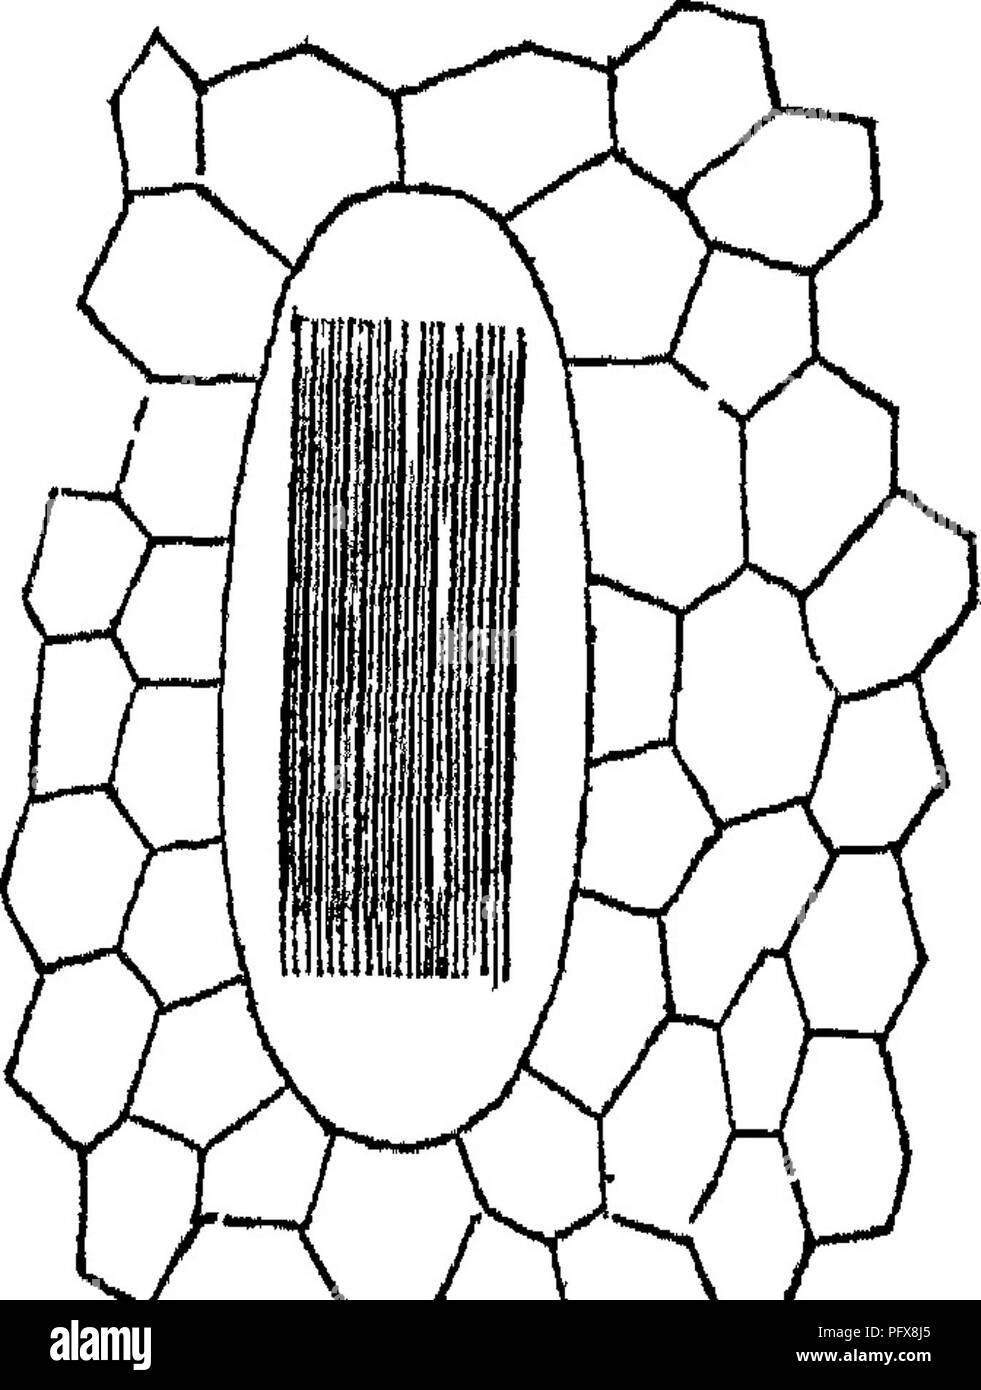 ". Principles of the anatomy and physiology of the vegetable cell. Plant cells and tissues. THE VEGETABLE CELL. 49 Crystals occur sometimes singly in a cell, or in numbers ii-regu- larly scattered, combined into star-shaped groups, or laid side by side in the form of ^w ^T. a bundle. The last condition (fig. 47) is the most frequent, for there can scarcely exist a plant in which have not been found in some organs, for instance the anther, or in the bark, such bundles of very fine, needle-like four-sided crystals, terminating at each end in four-sided py- ramids (De Oandolle's "" Raphides'') - Stock Image"